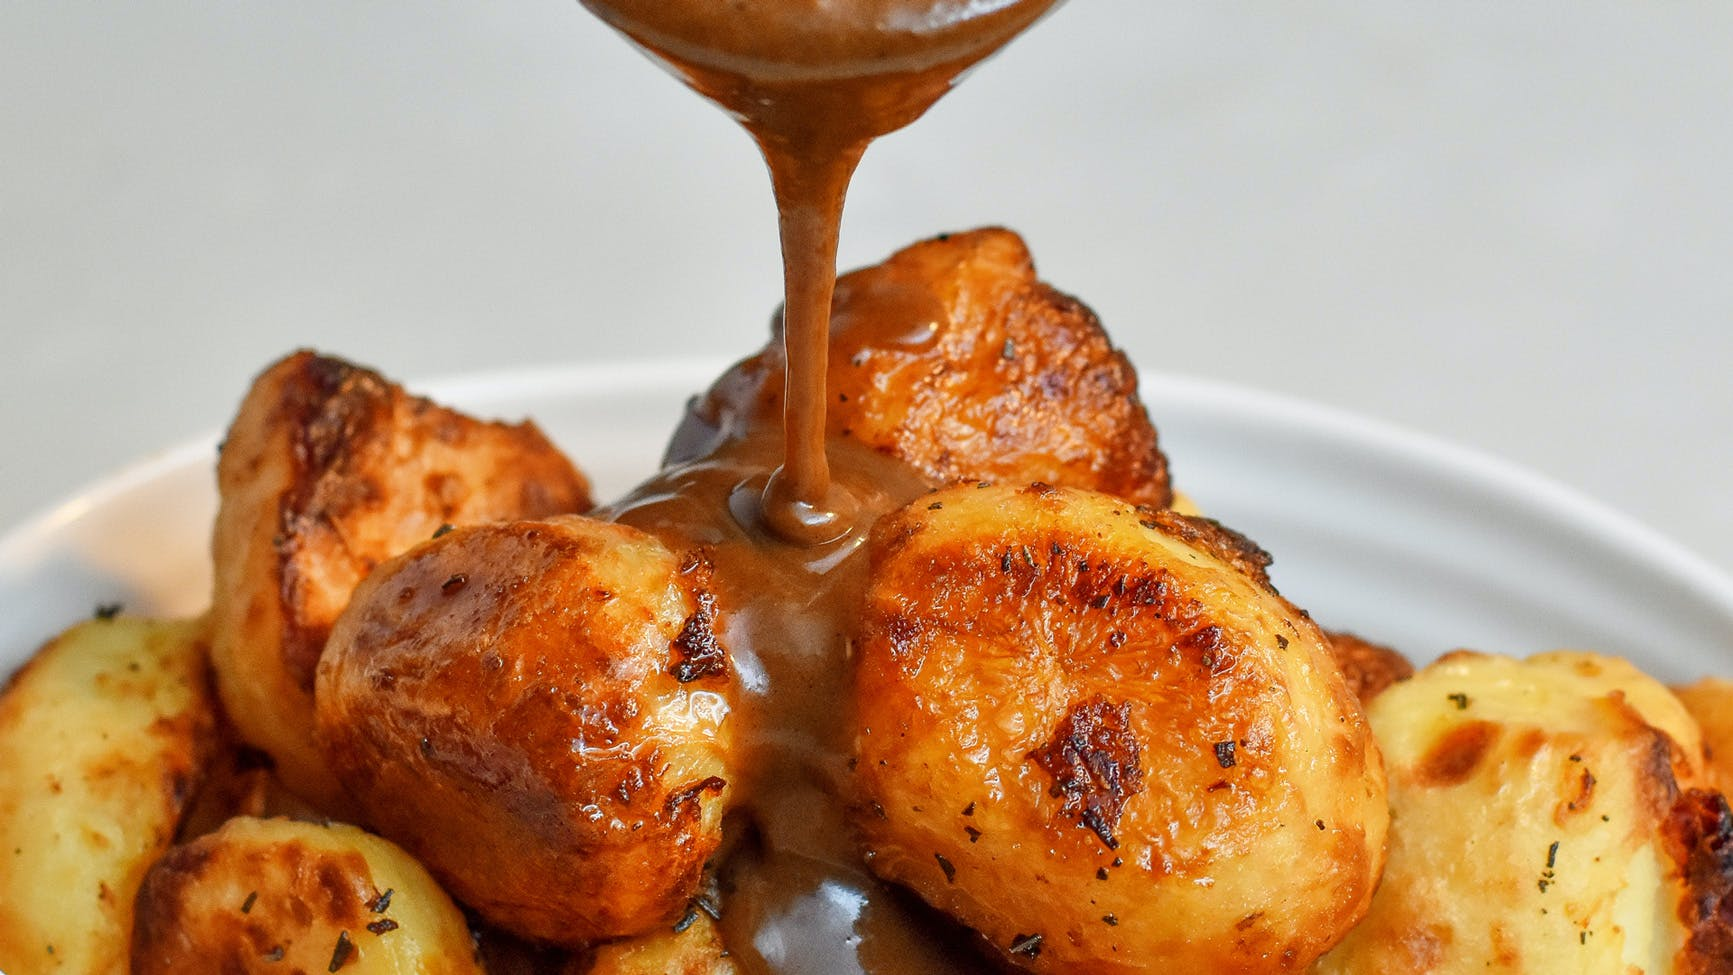 gravy being pourned over roast potatoes